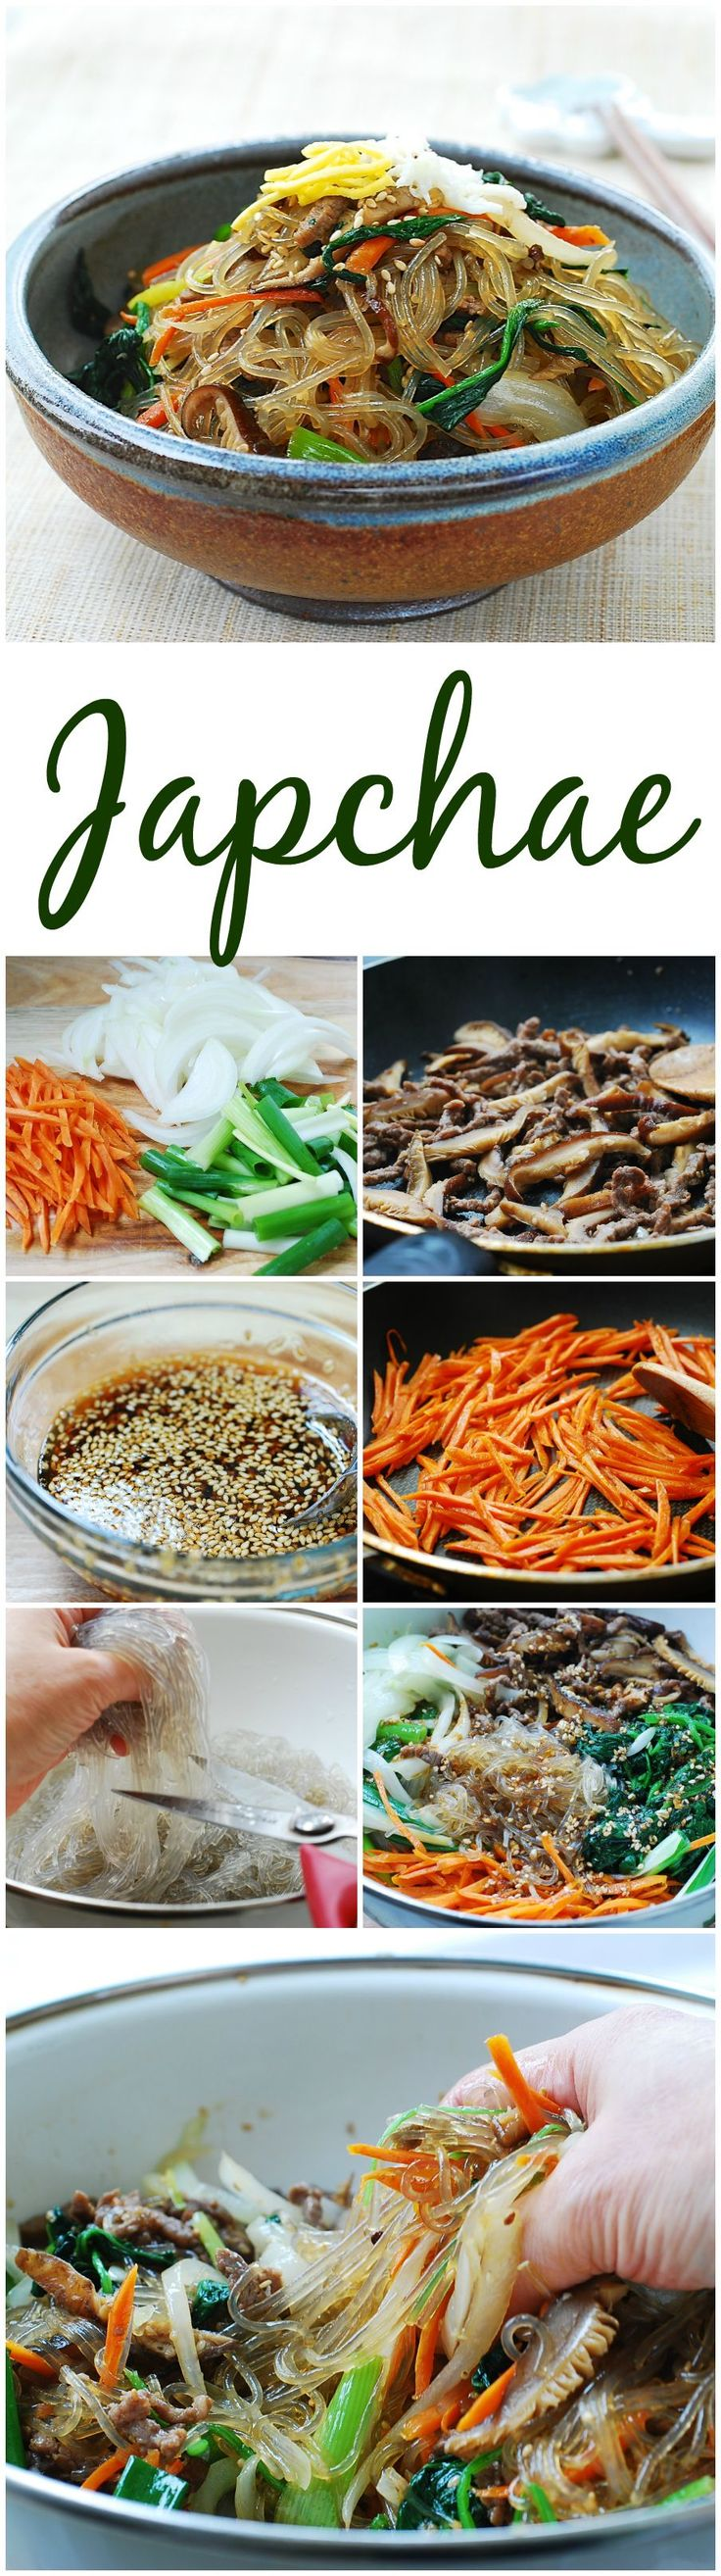 Easy to follow recipe for Korean stir-fried starch noodles with beef and vegetables!